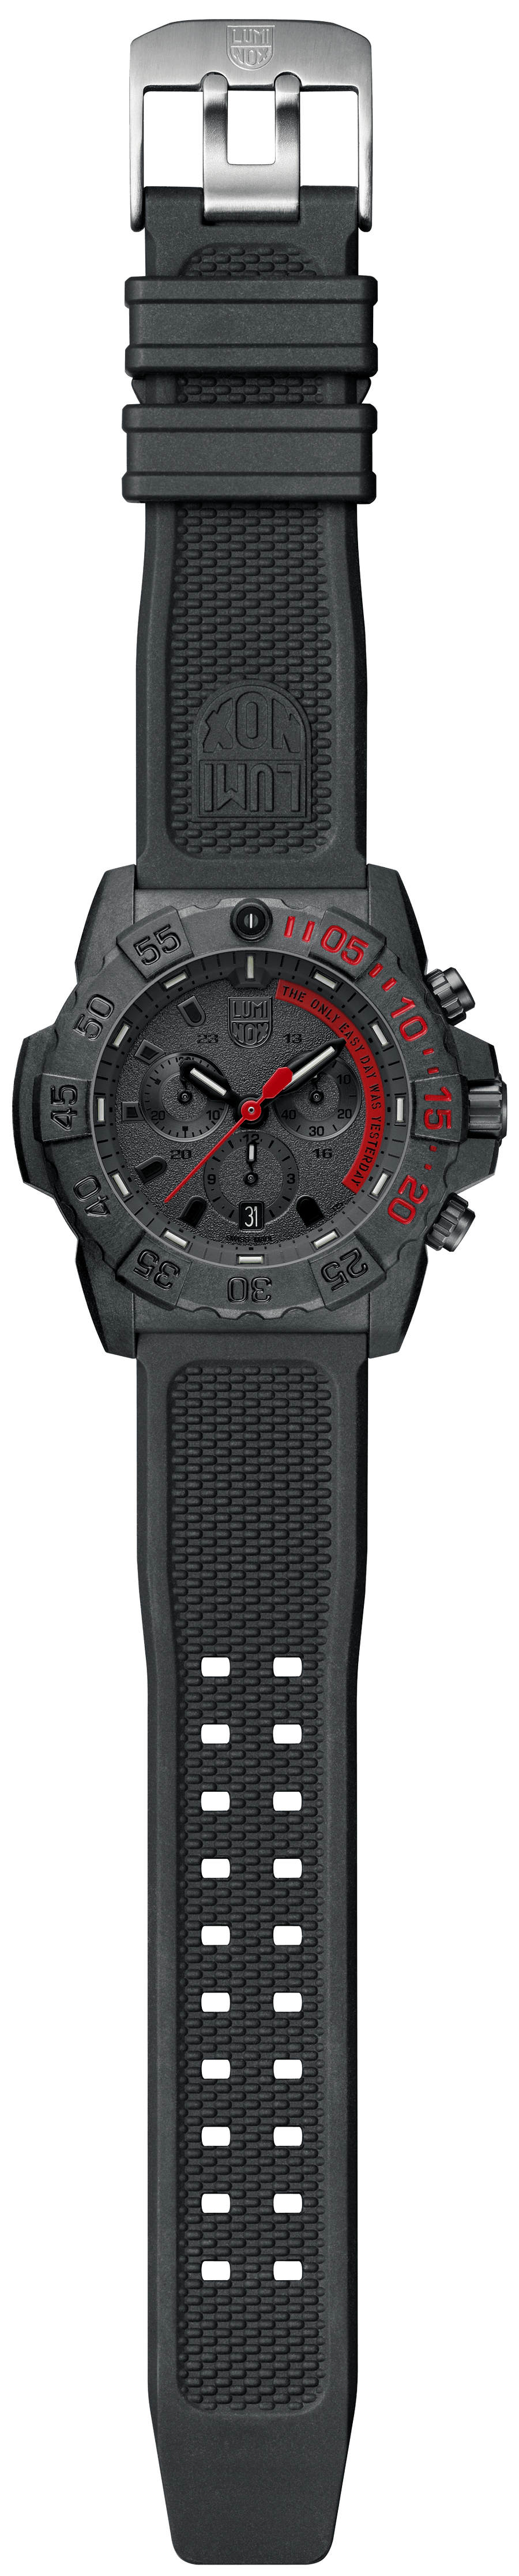 Navy SEAL Chronograph - 3581.EY